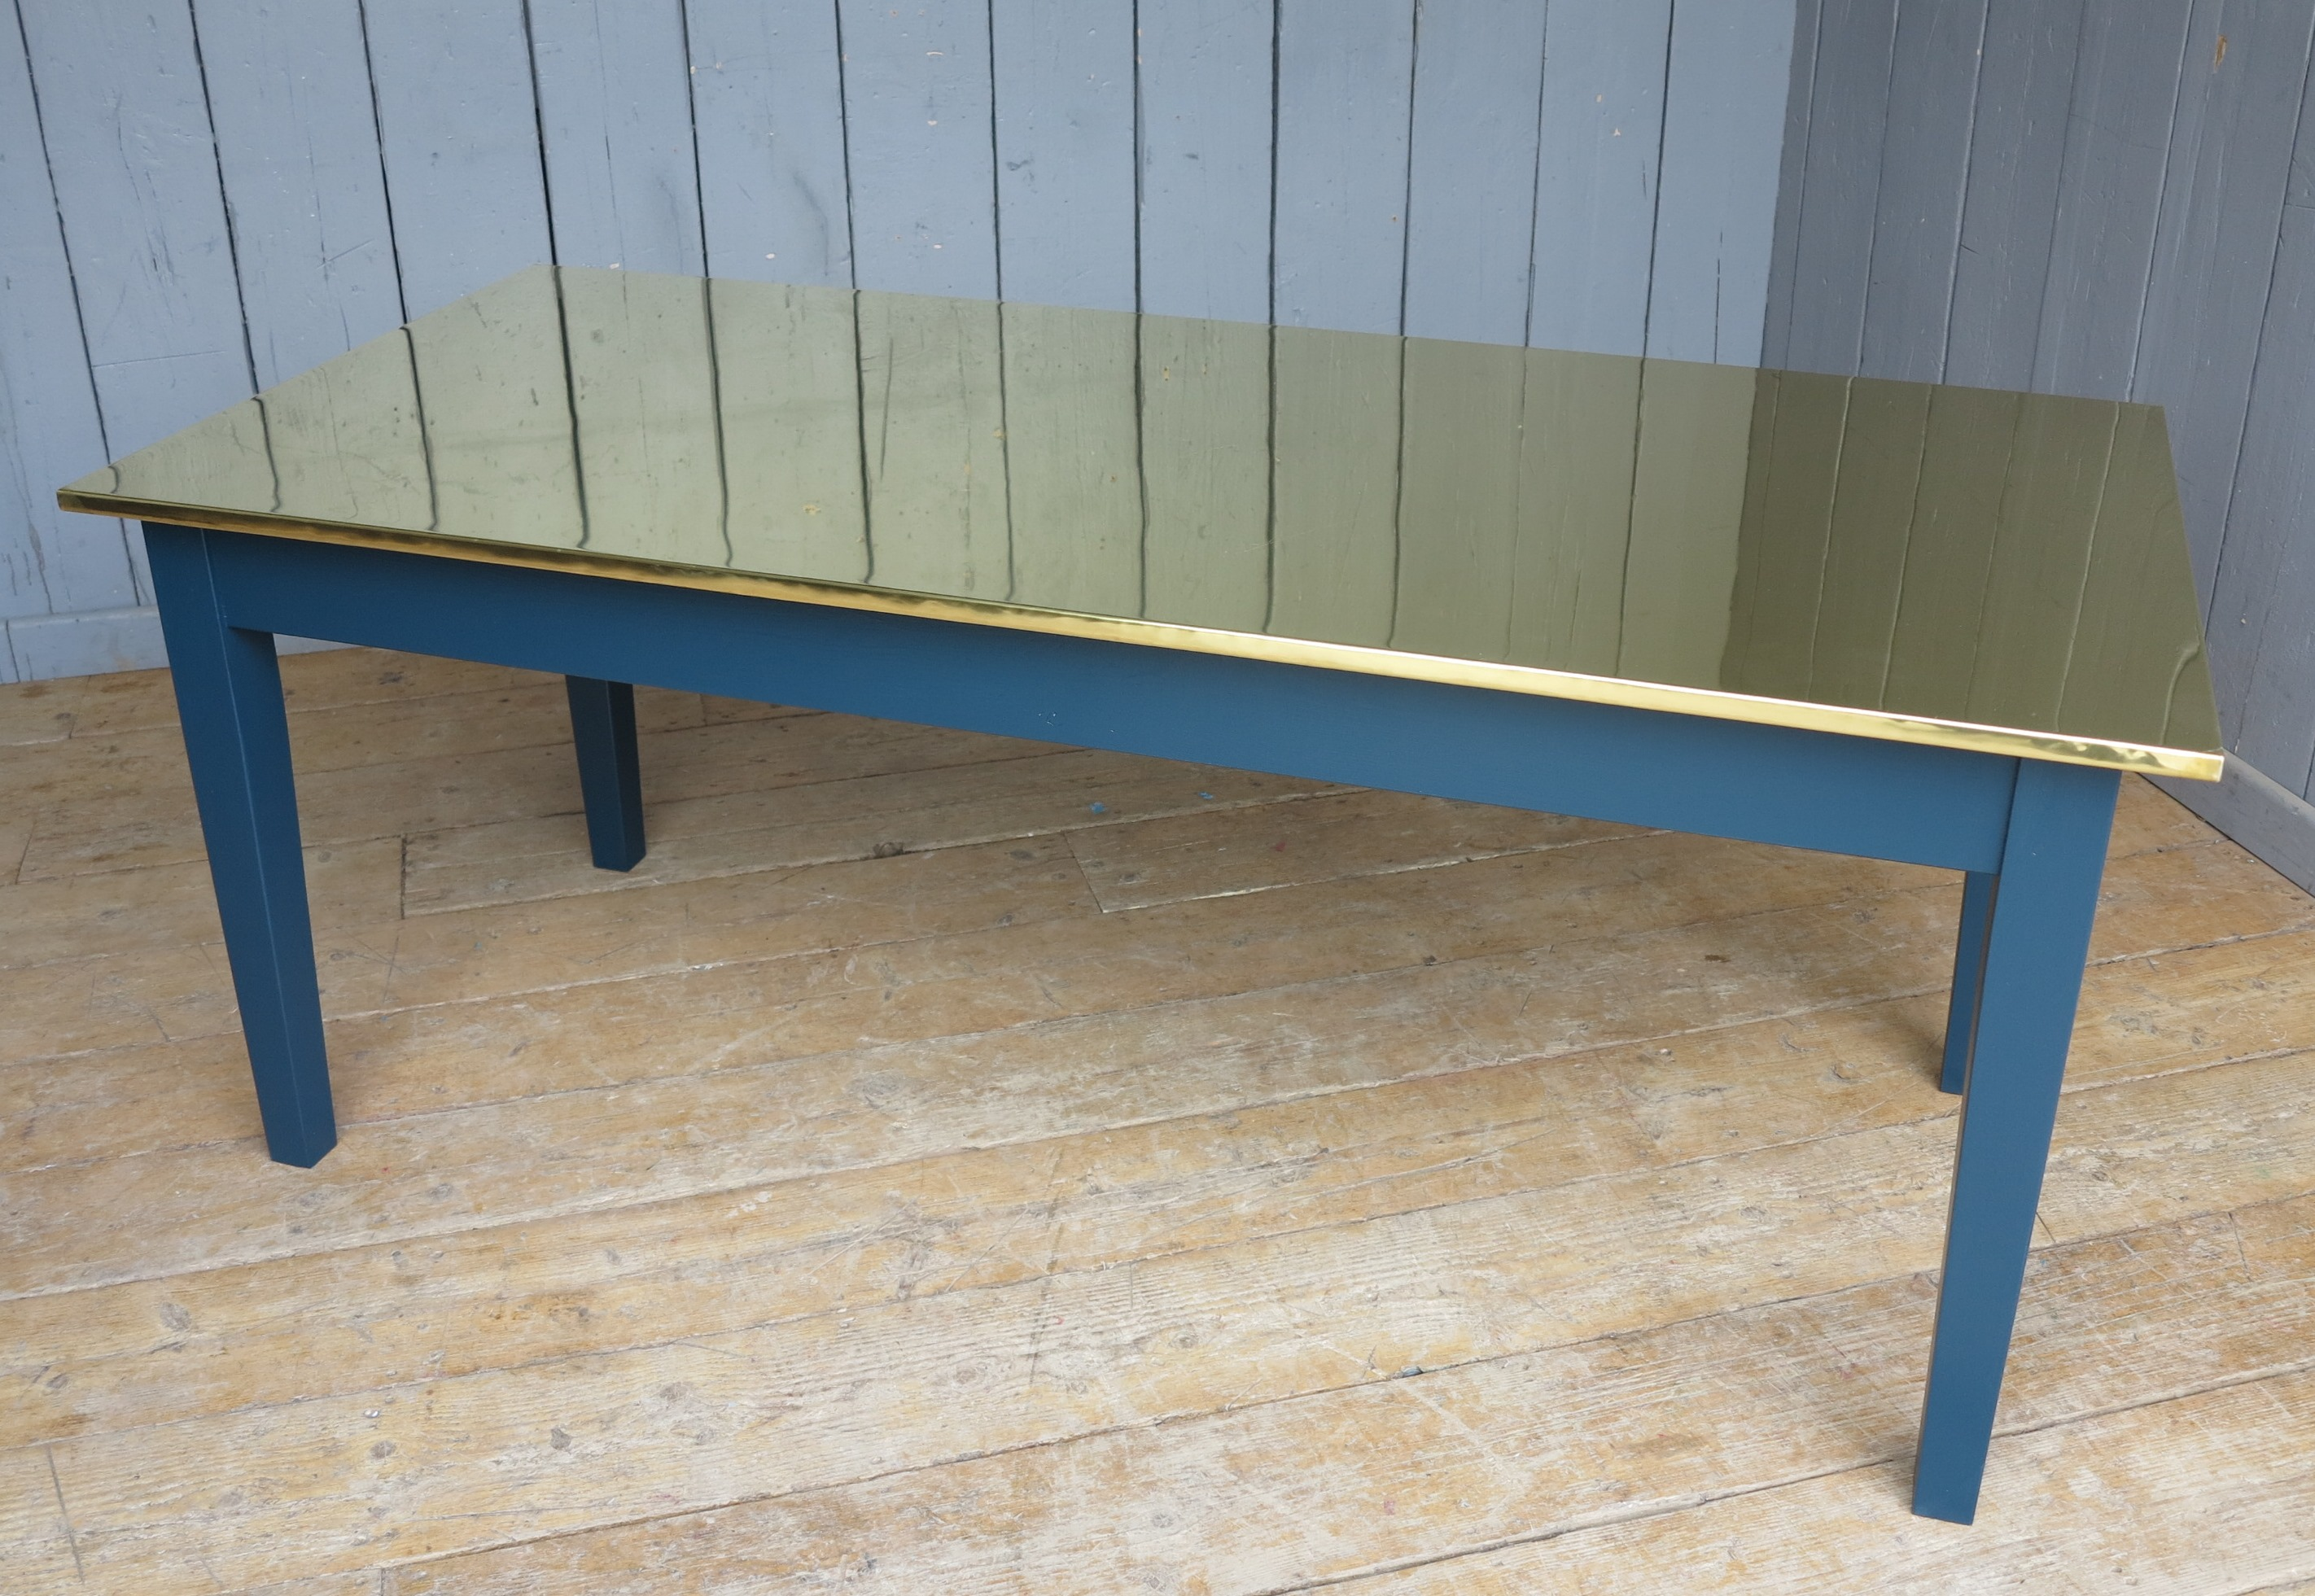 bespoke brass table made by hand at UKAA to individual specifications and requirements. Table base painted in Farrow and Ball Hague Blue.